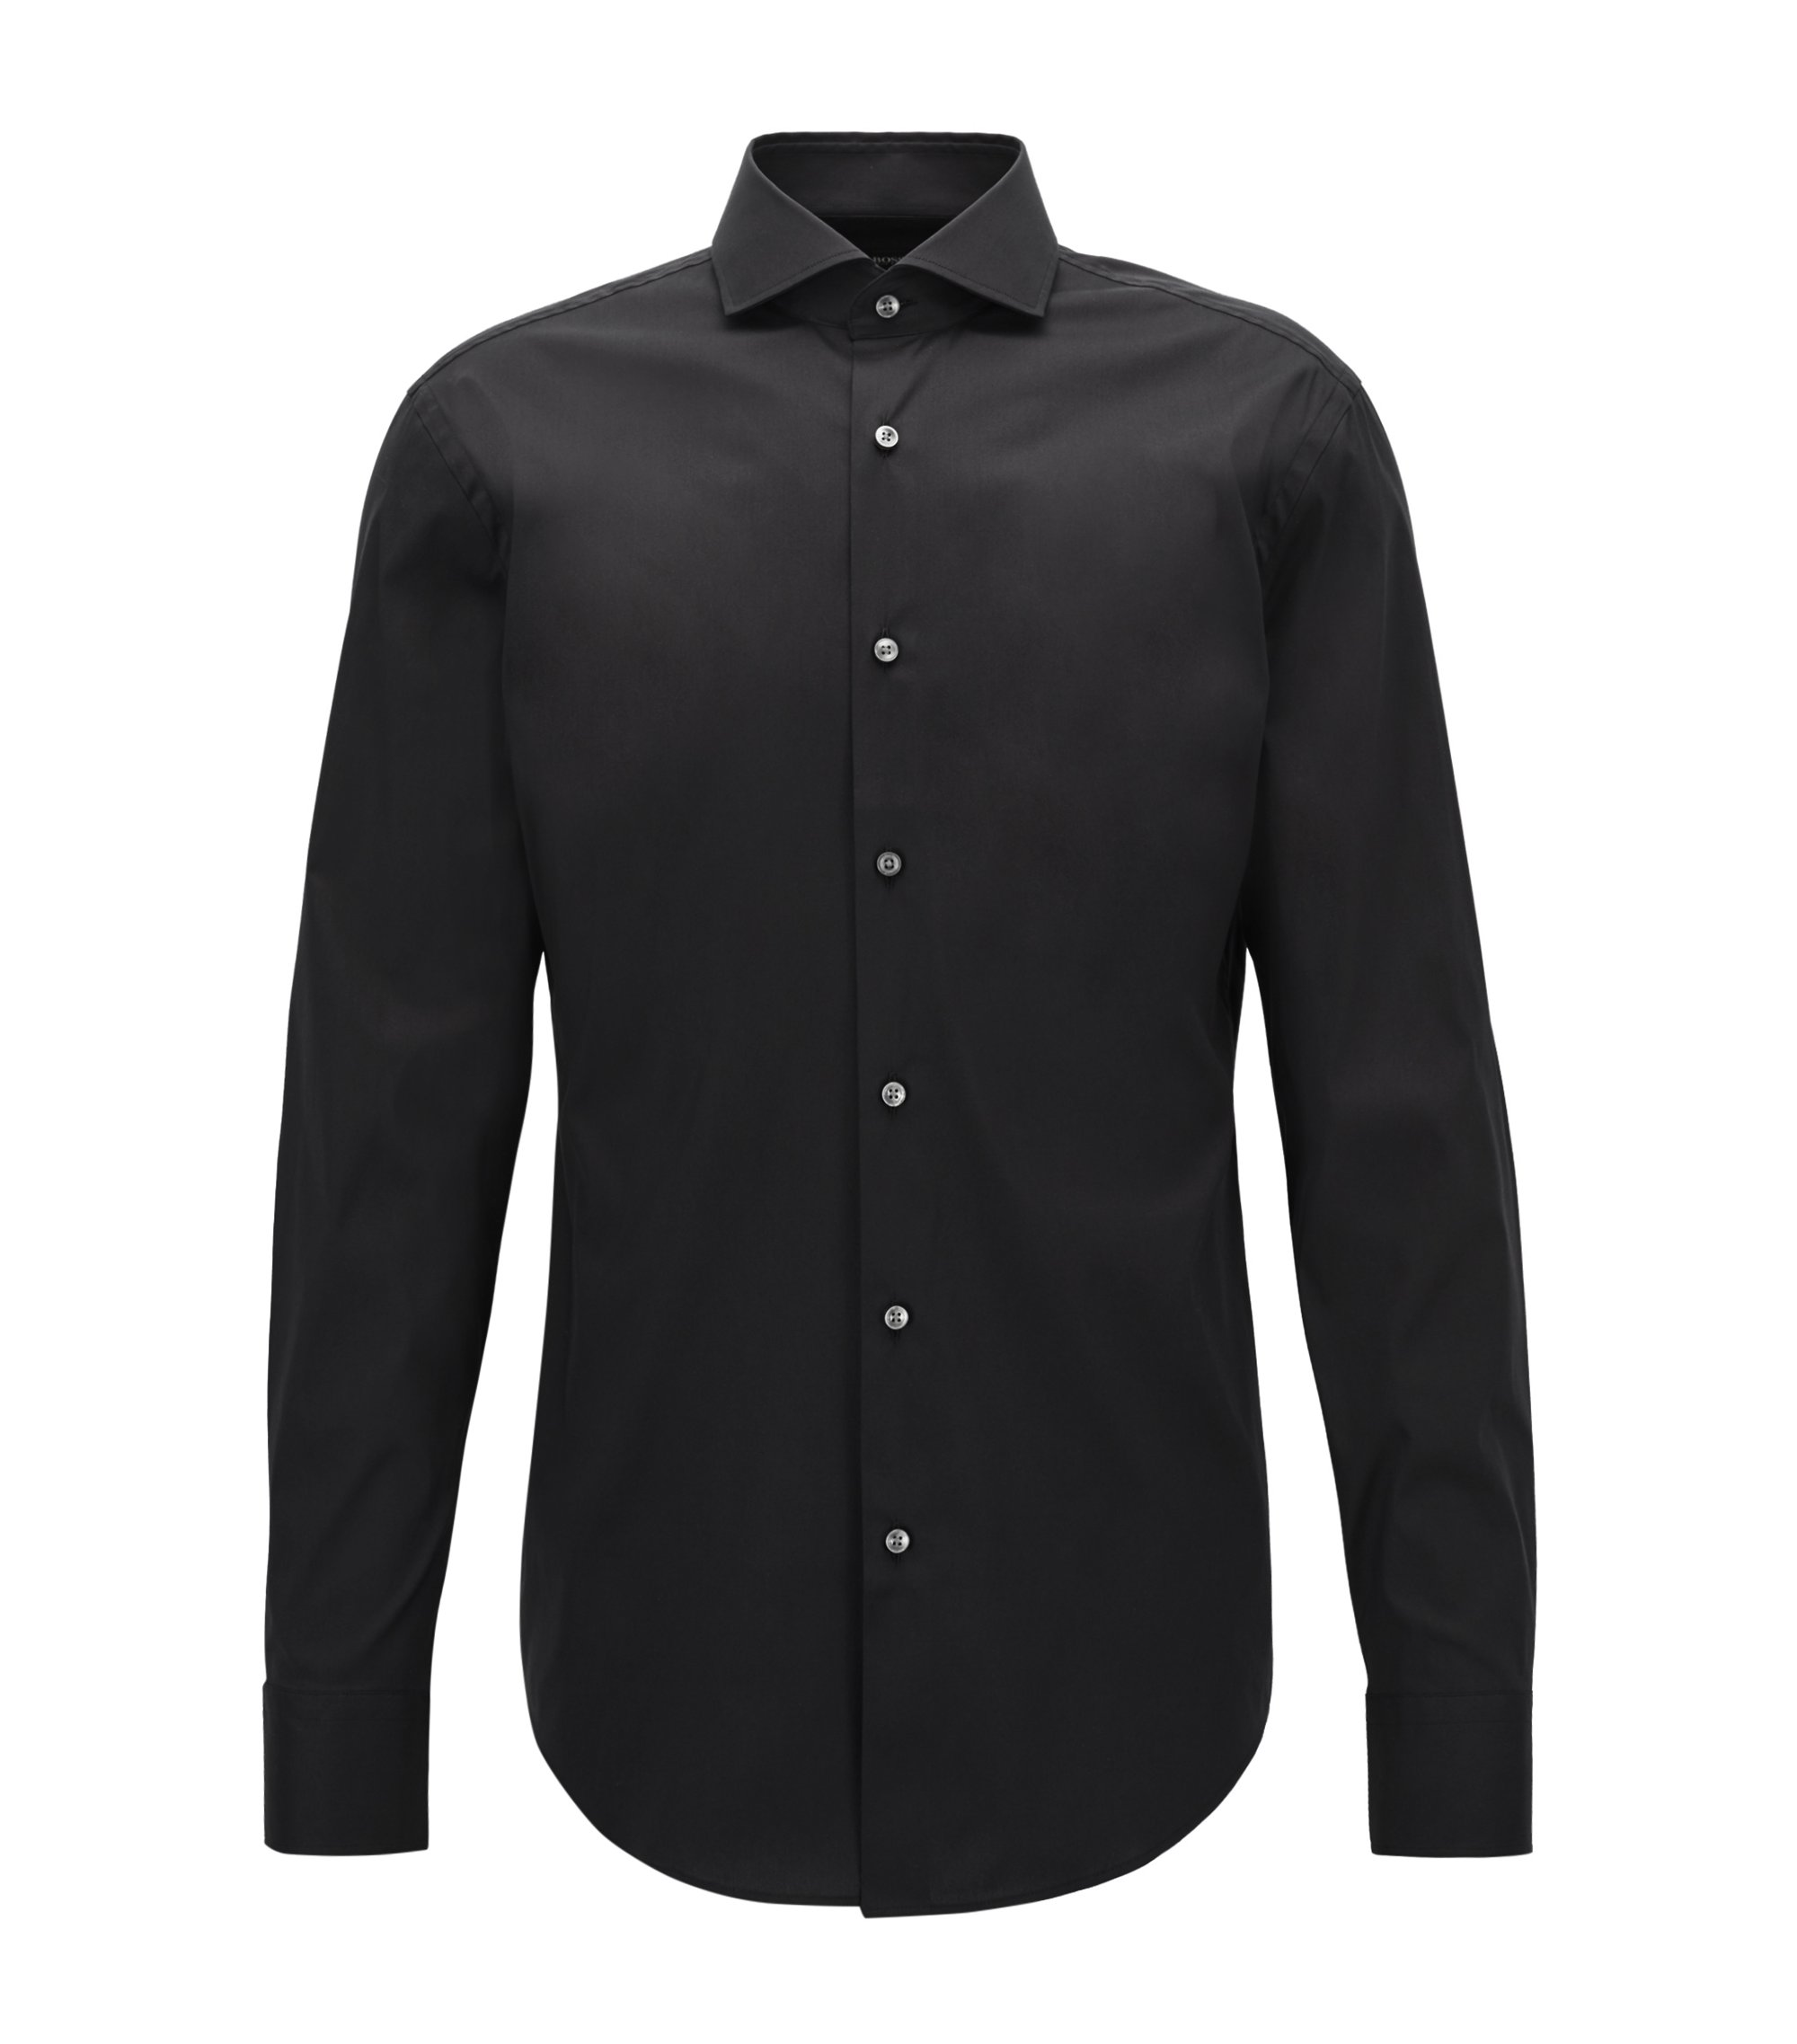 Stretch Cotton Dress Shirt with Stretch Tailoring, Slim Fit | Jason, Black